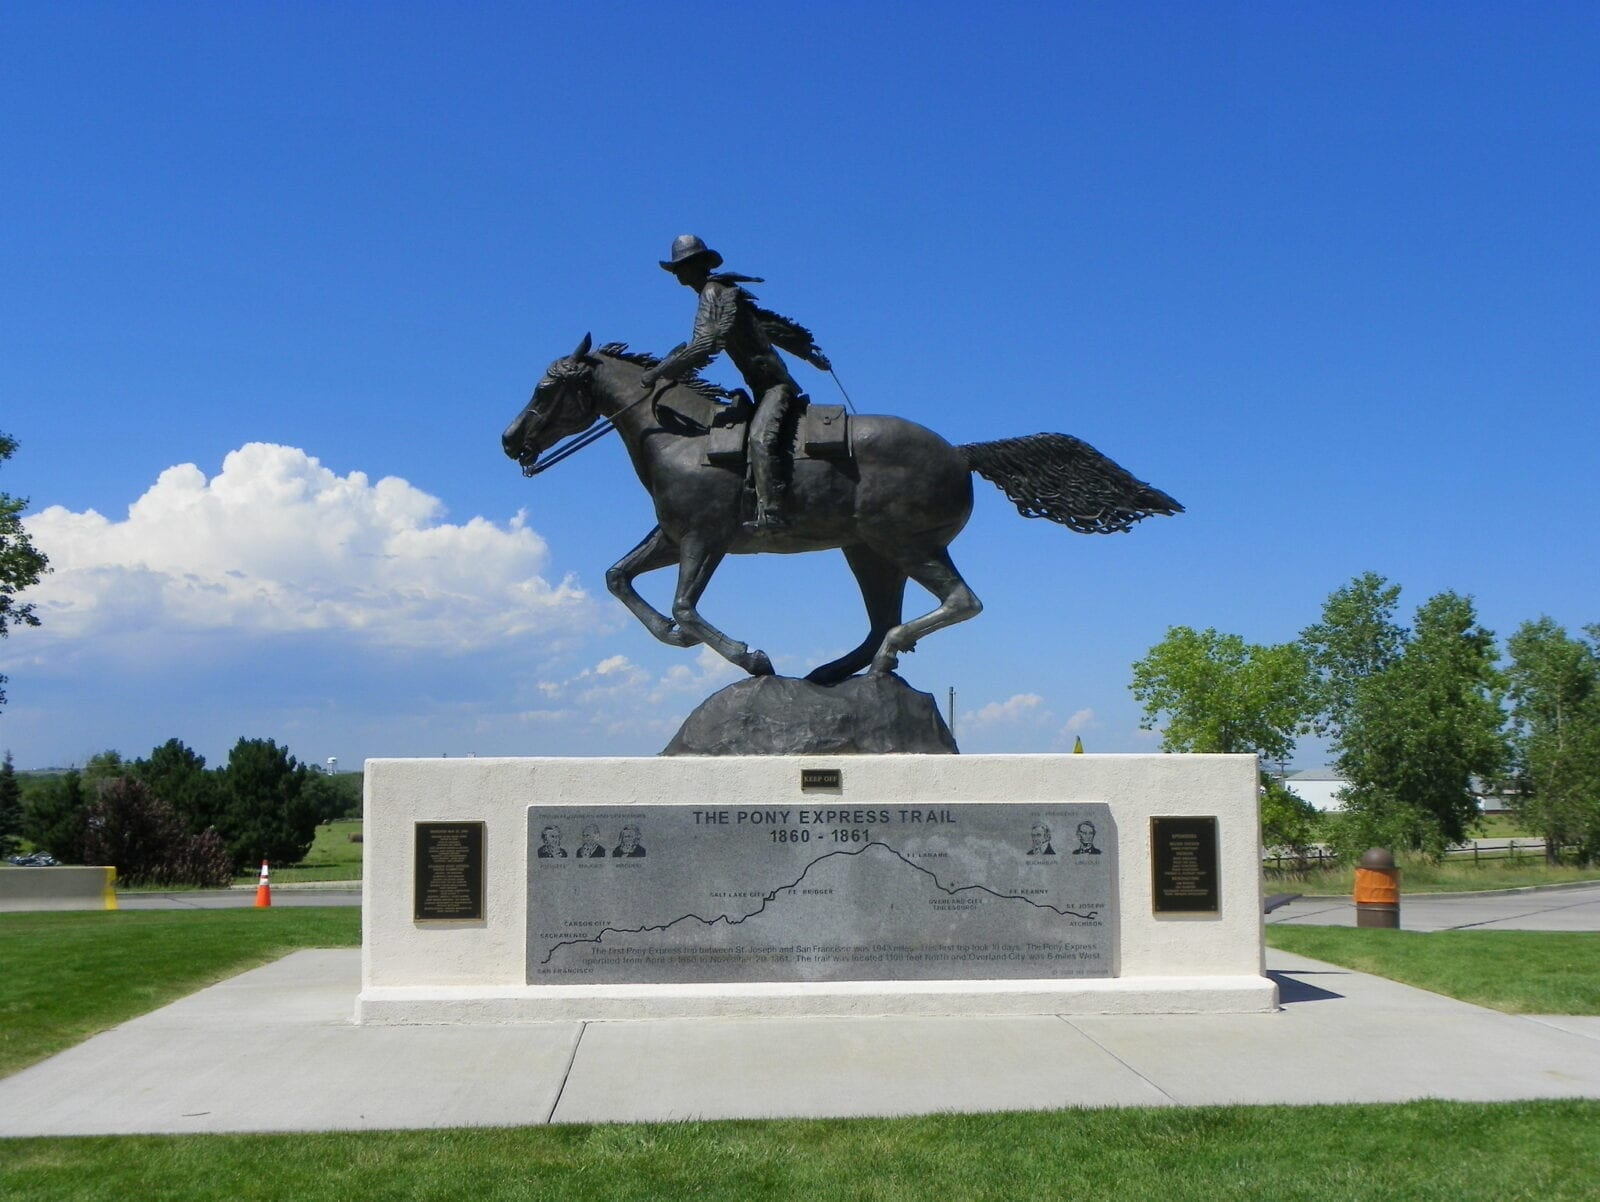 image of statue at Pony Express Trail